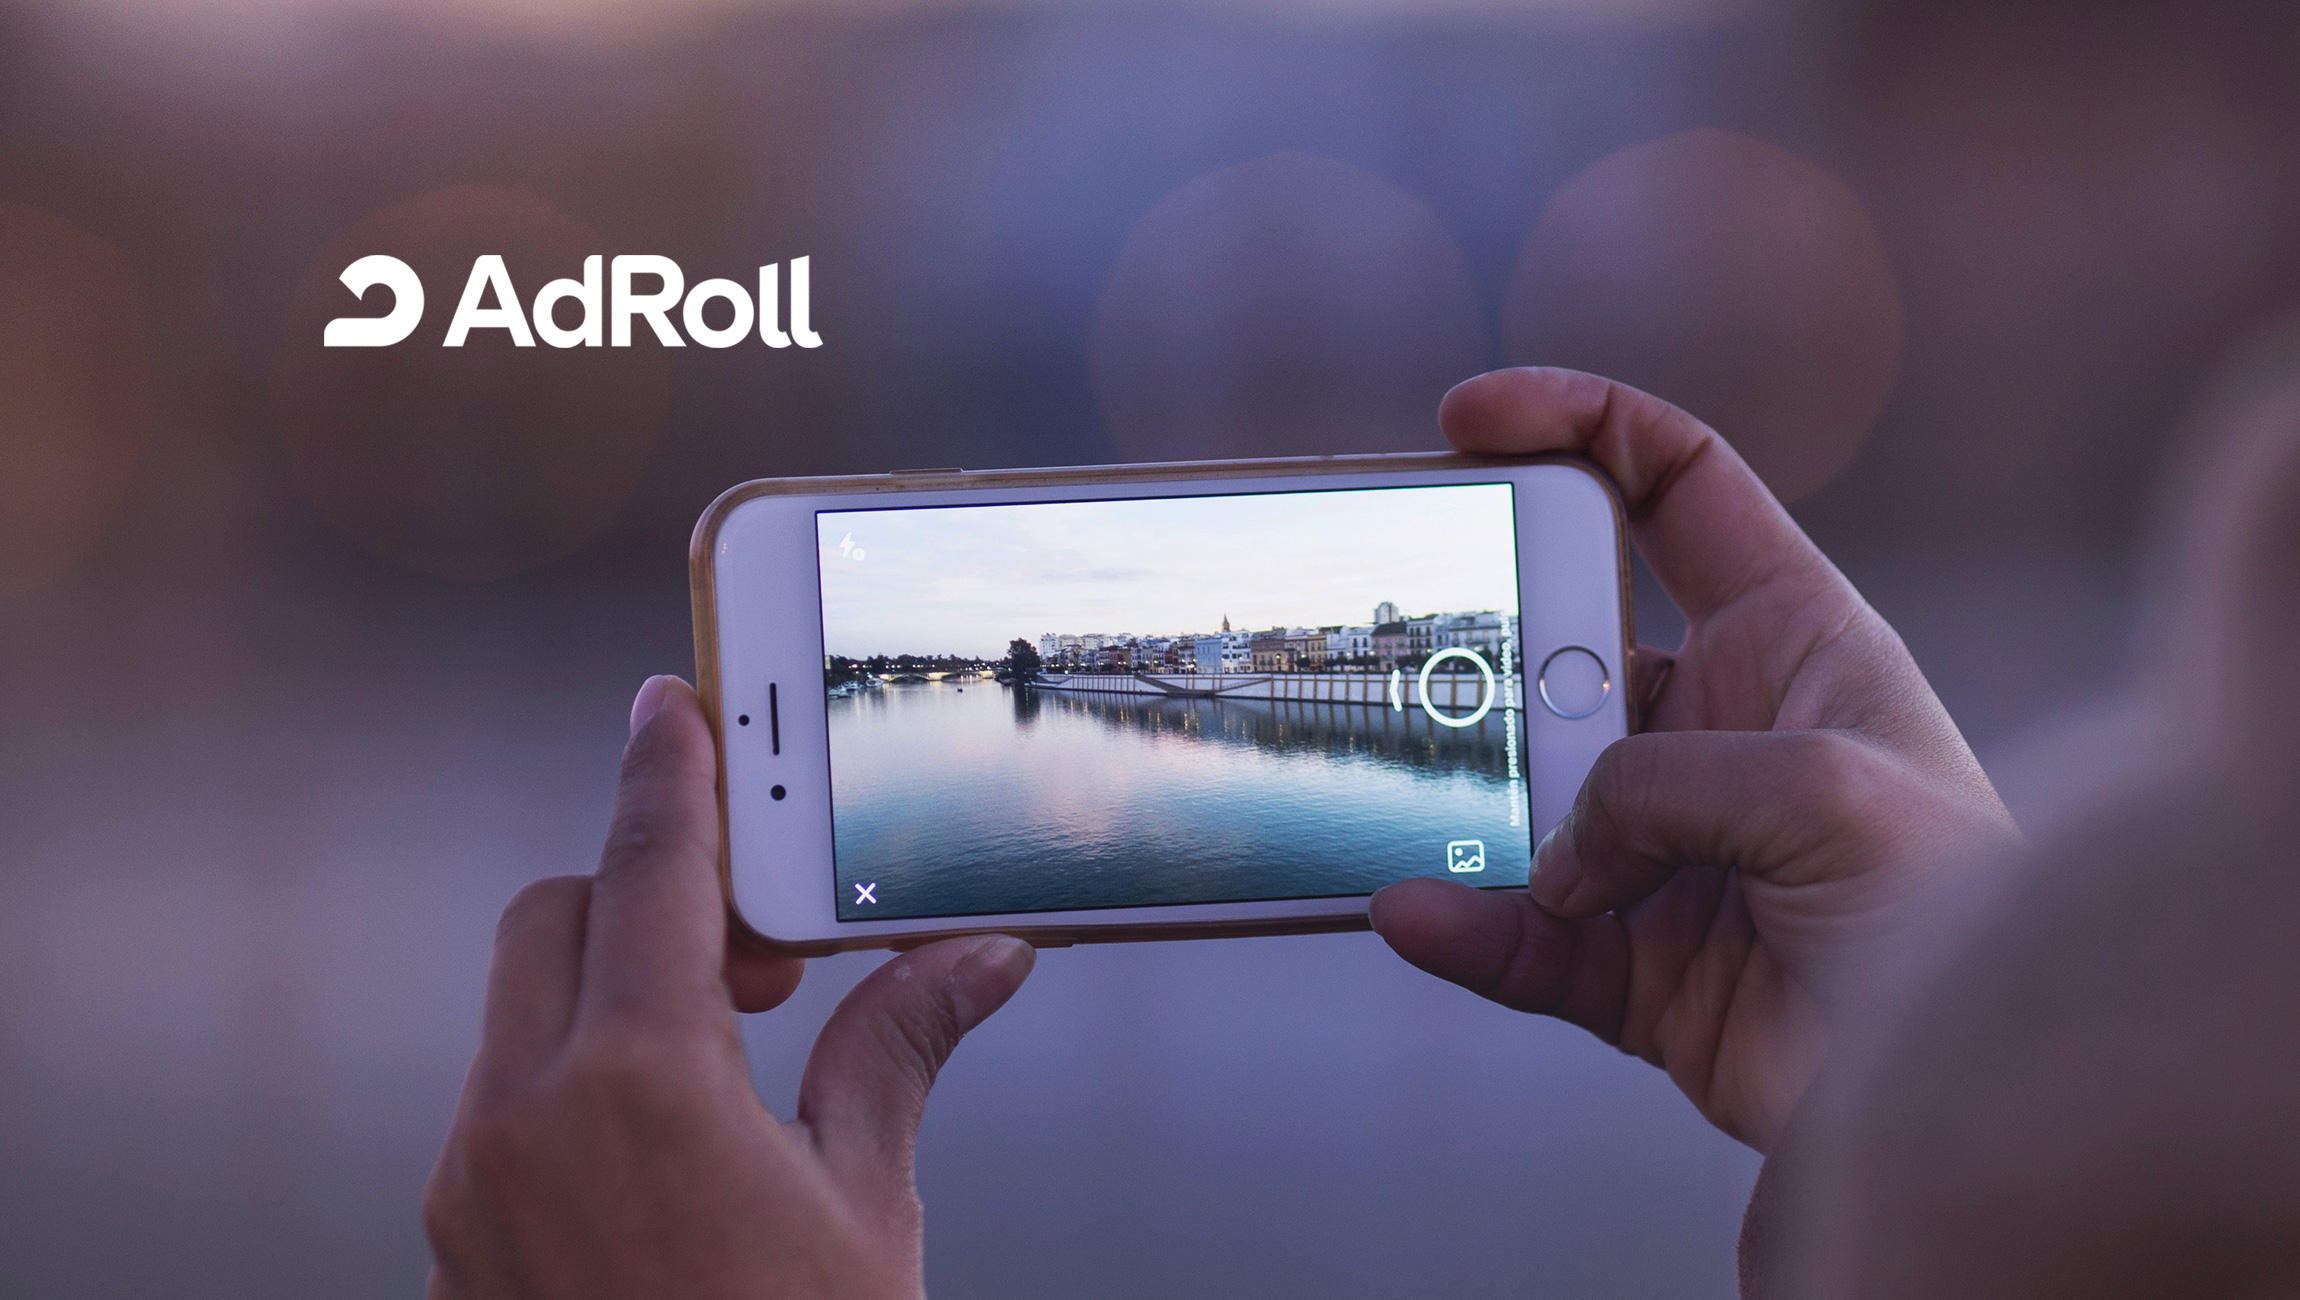 AdRoll Launches Video Ads to Global Direct-to-Consumer Customer Base